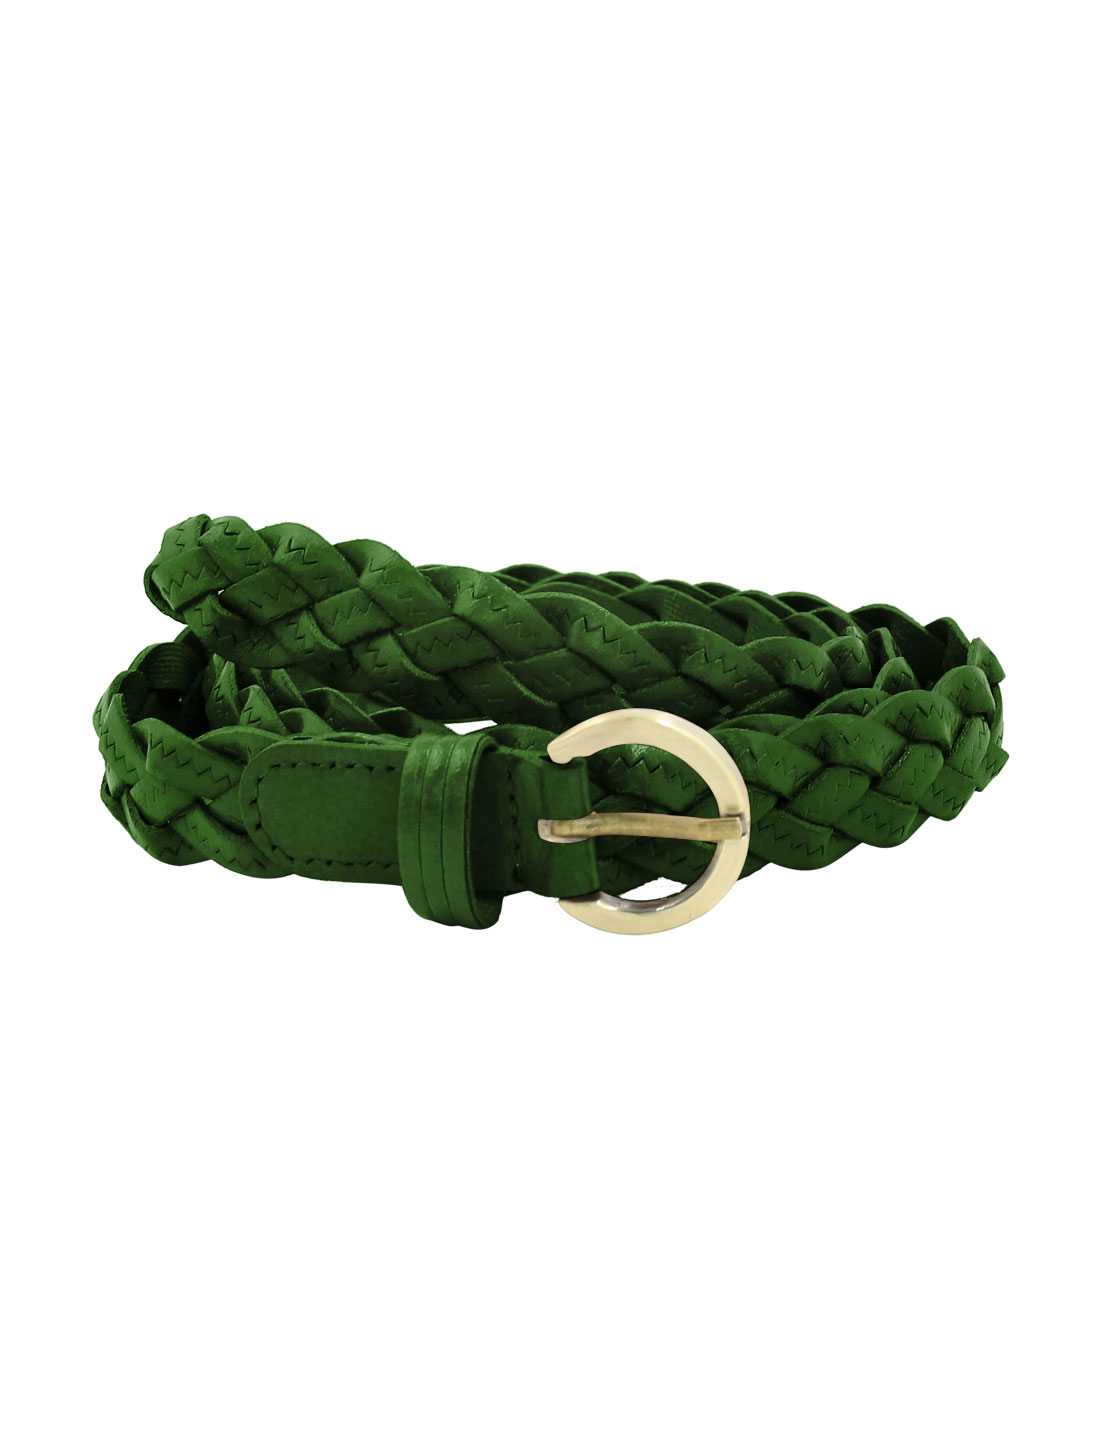 Unisex Adjustable Zig Zag Design PU Weave Belt Green